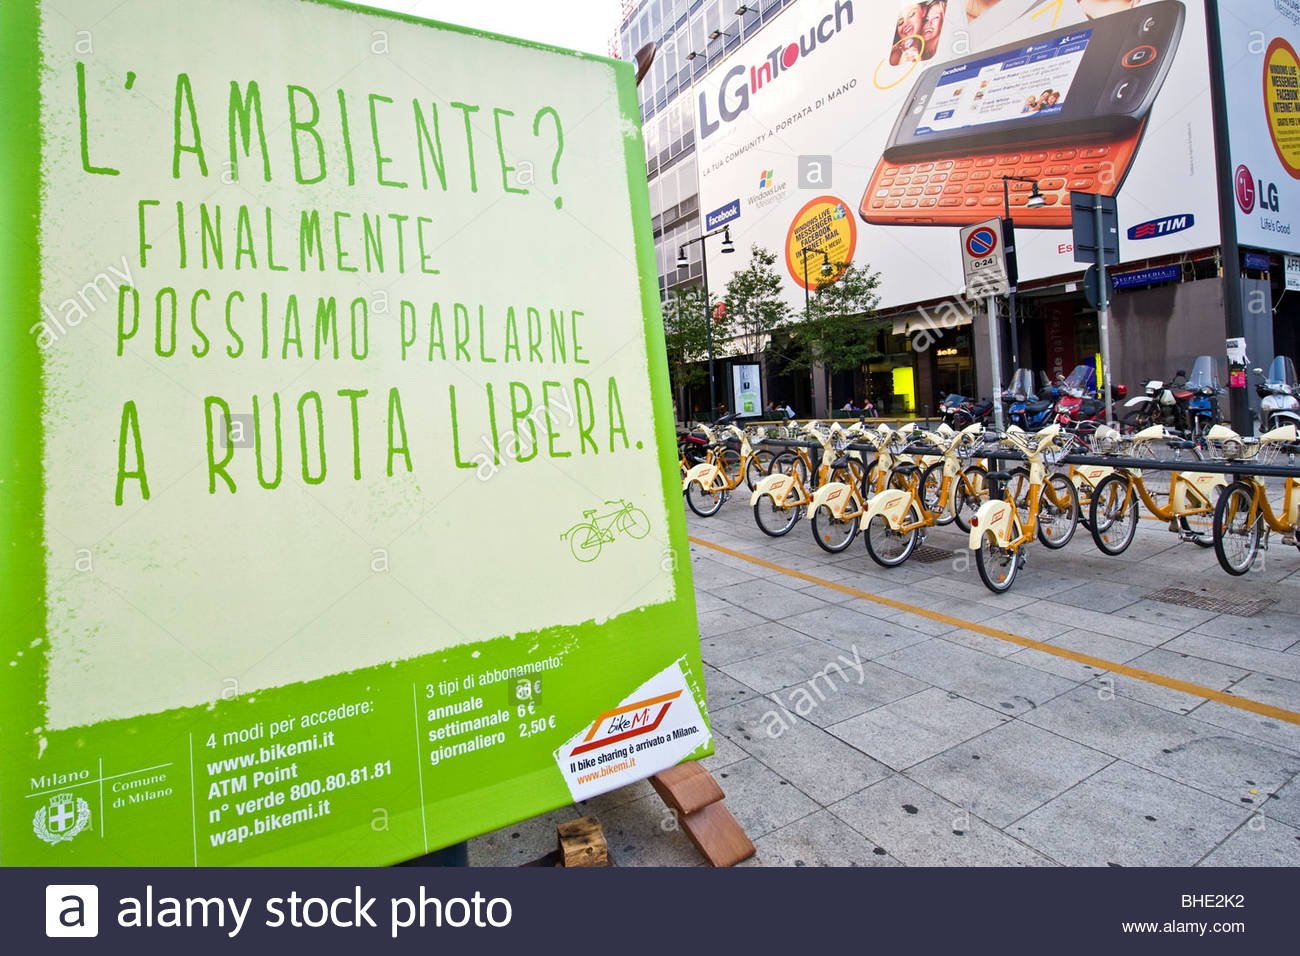 bikesharing'milan, lombardy, italy - Stock Image